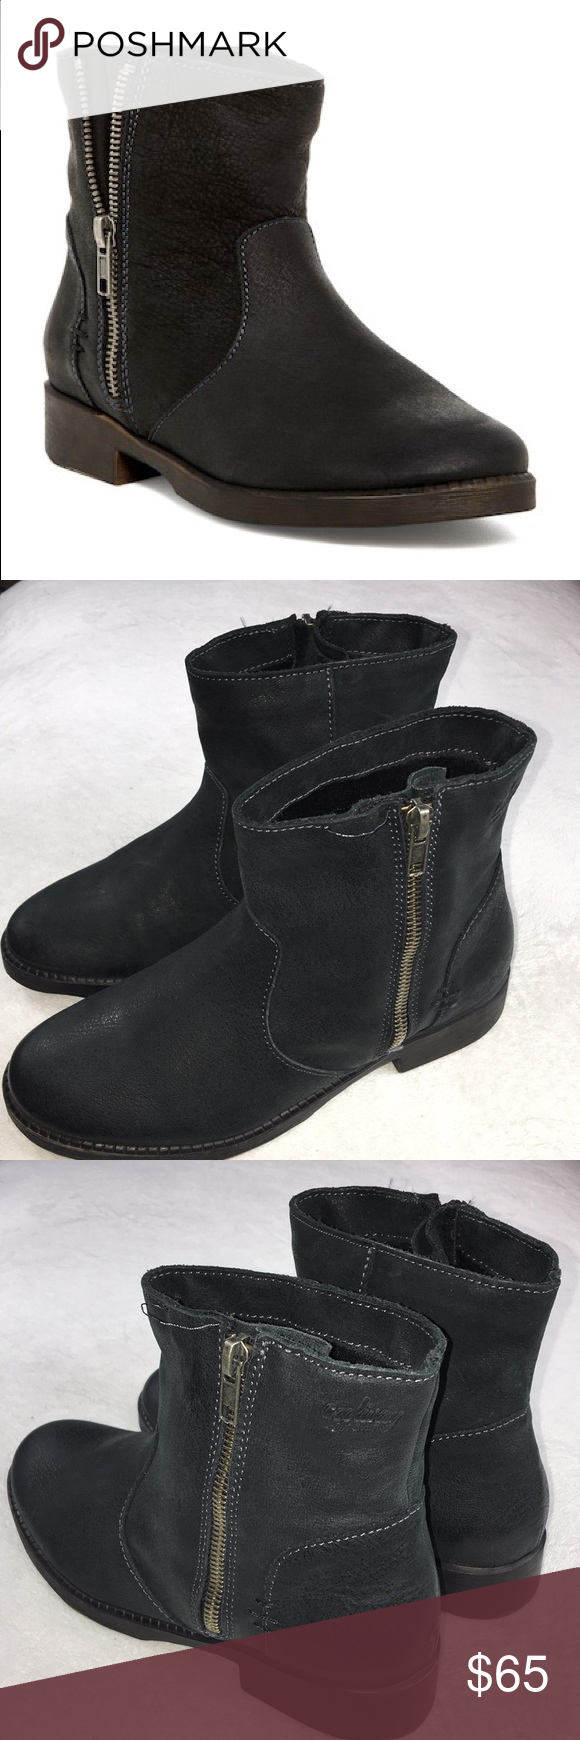 670933960 Coolway Side Zip Short Boots Black Leather Coolway Side Zip Short Boots in  Black. Size 37 6. Leather. Brand new without box. They have 1 seam issue  beside ...